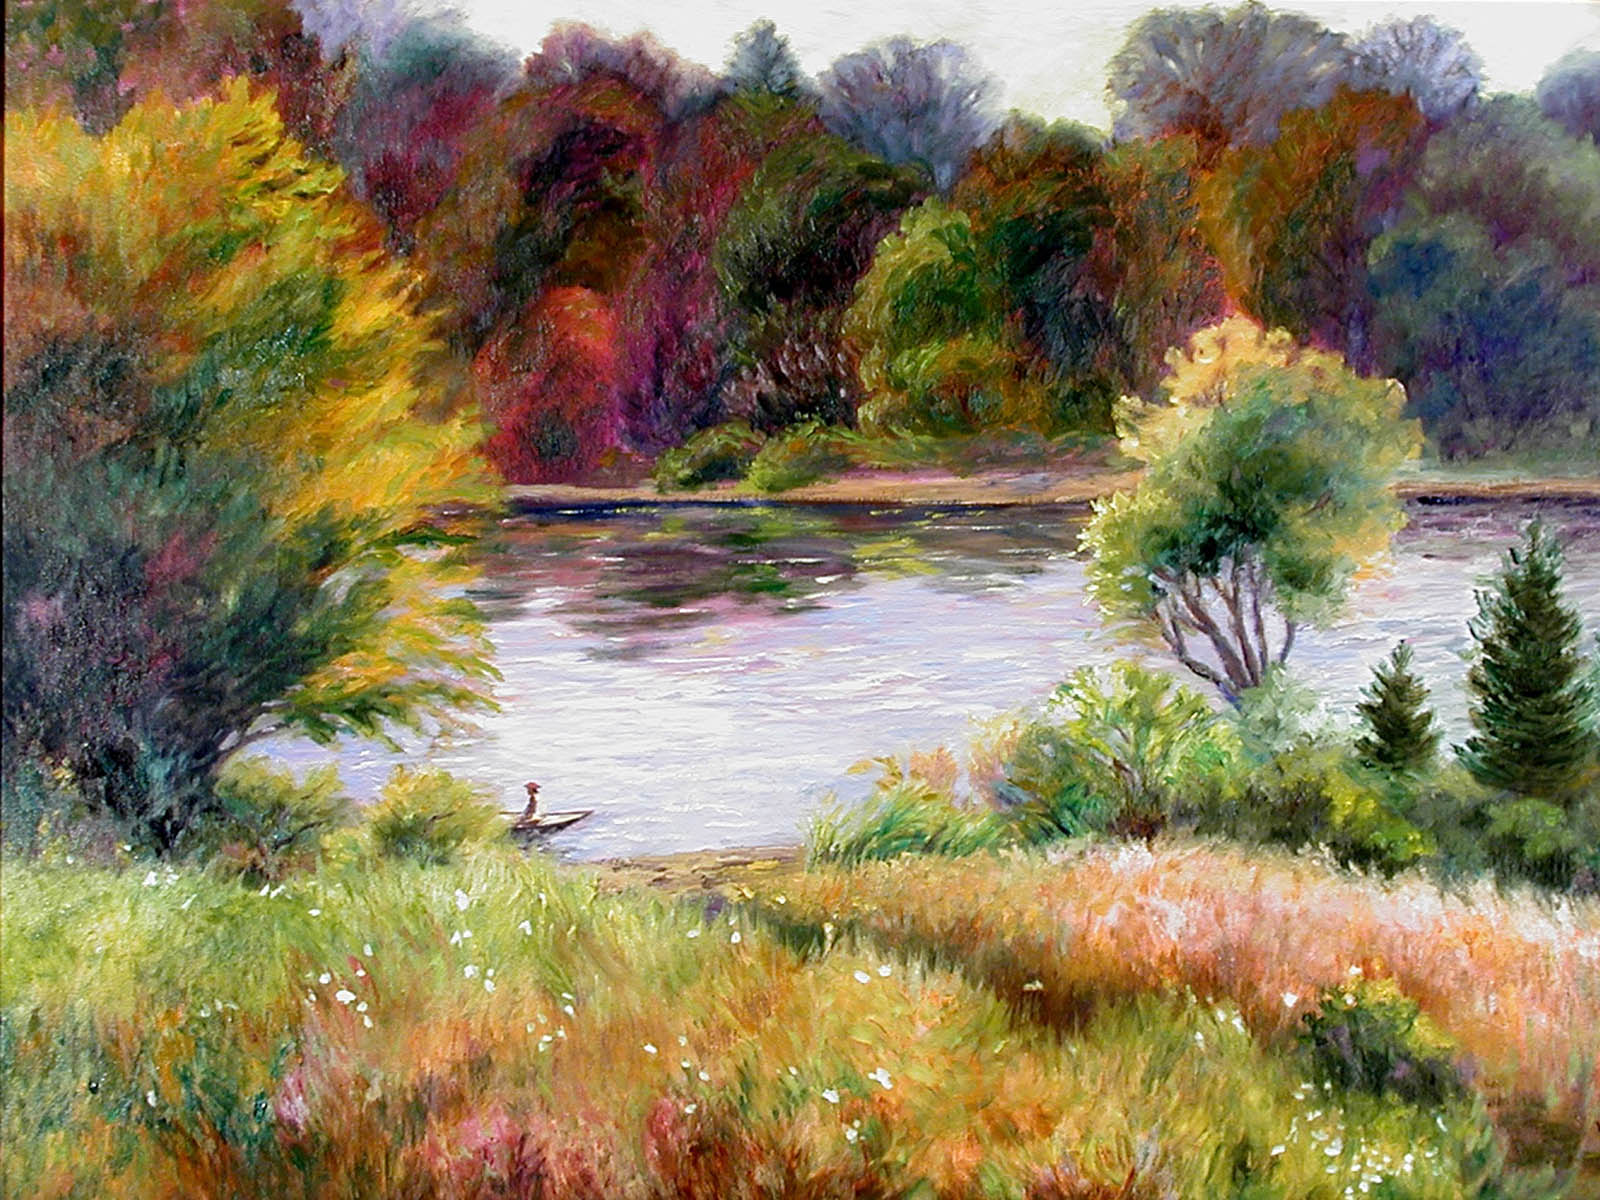 Wallpapers pond arts - Art wallpaper pictures ...